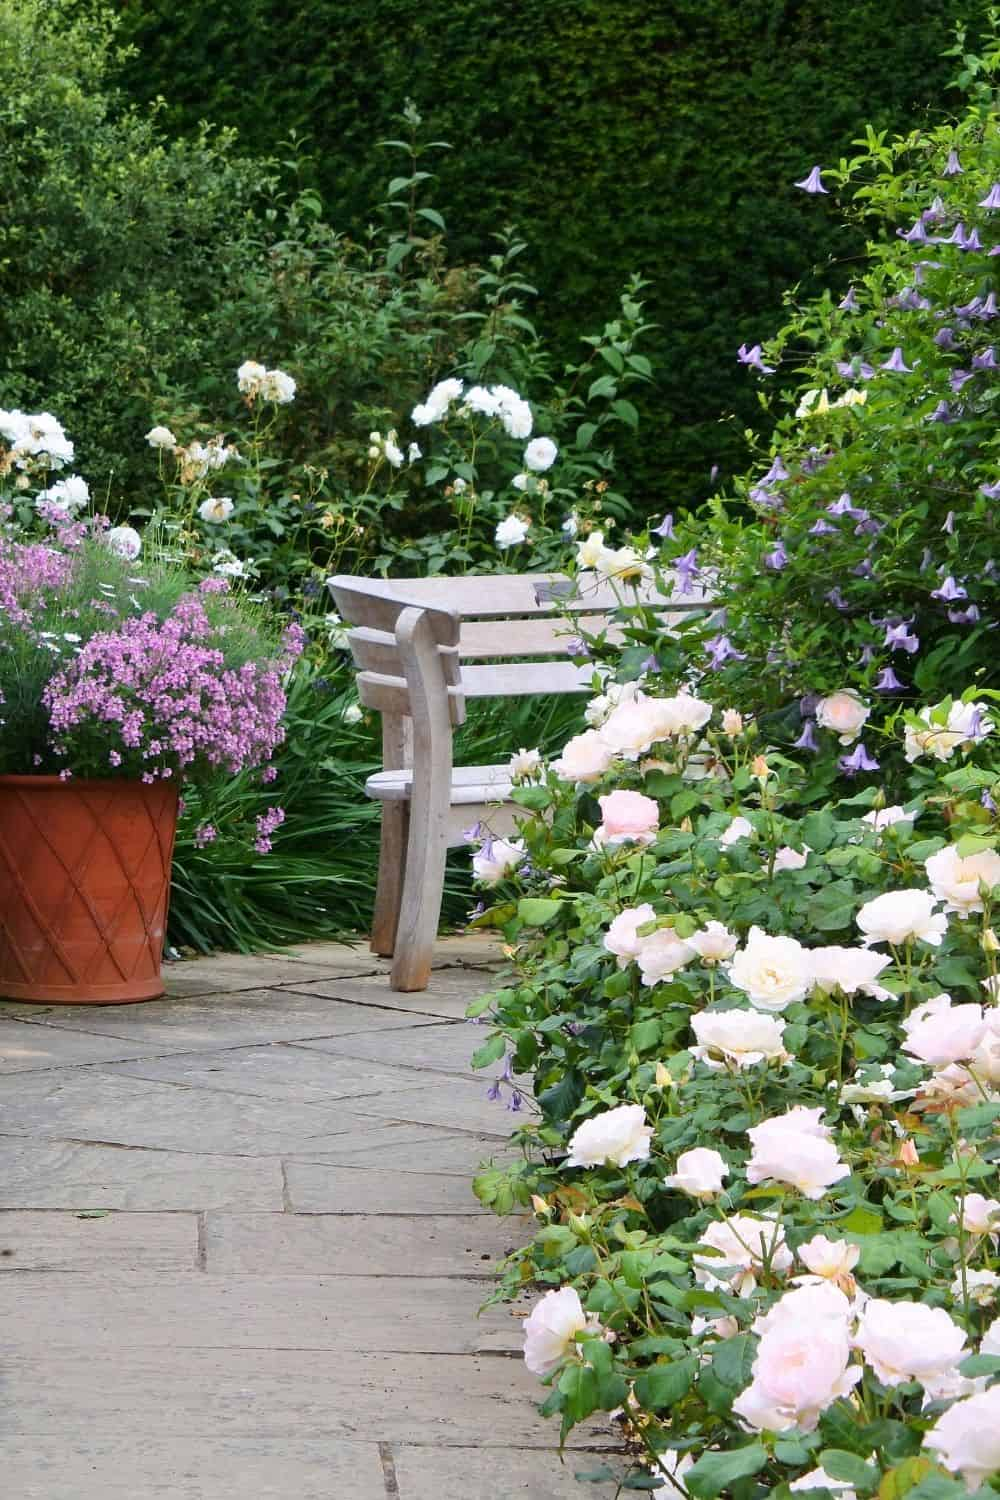 Beautiful spot created by landscaping with roses